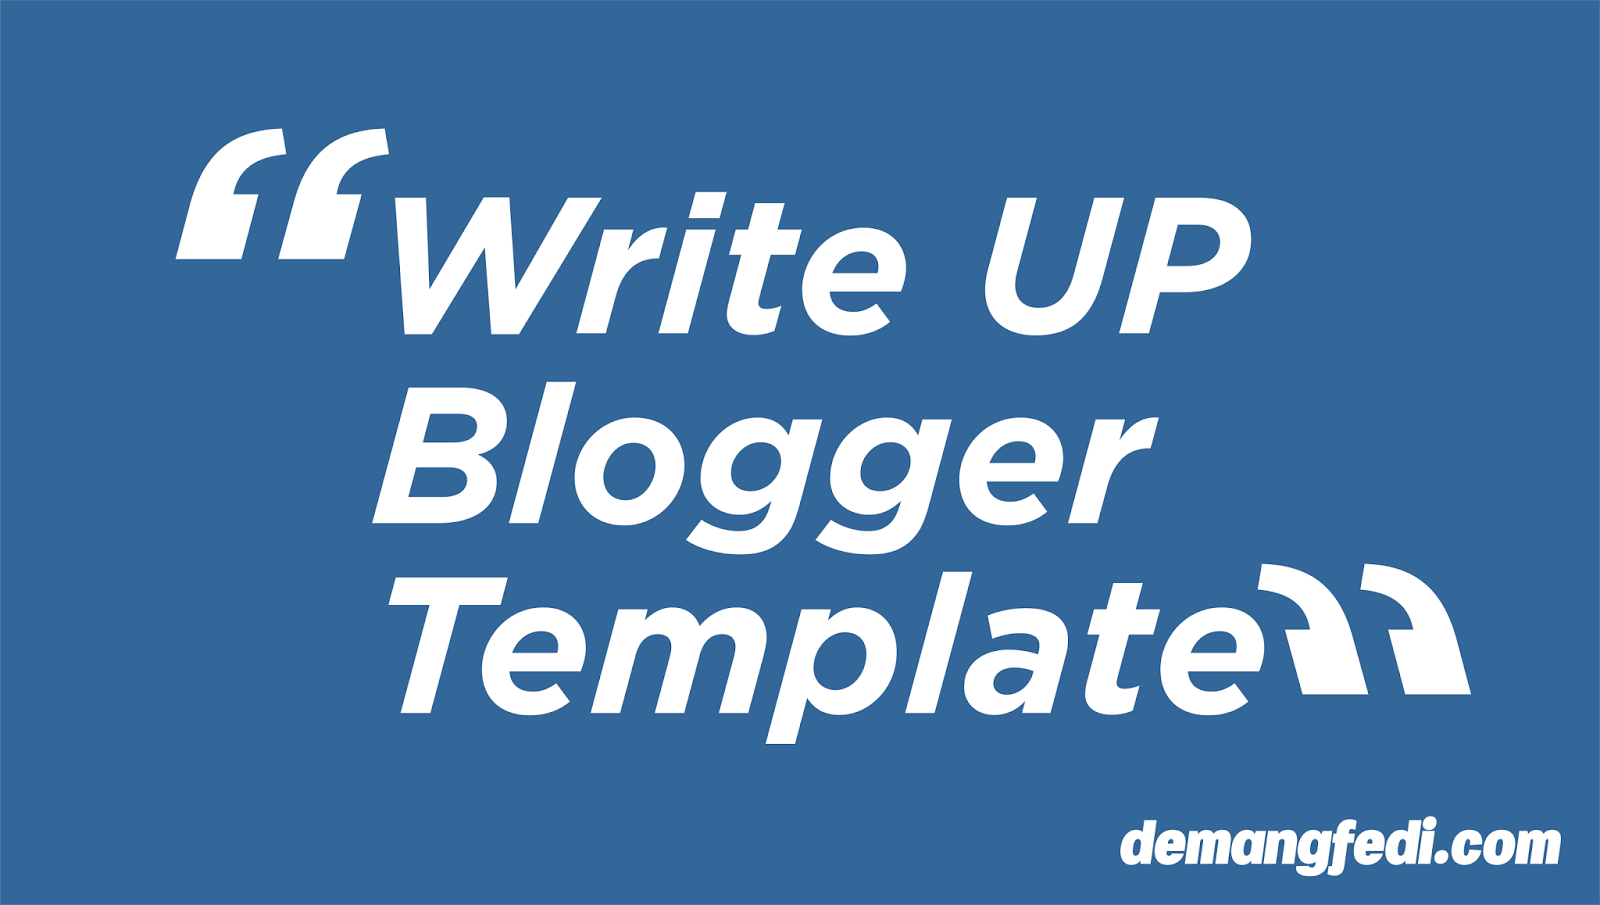 Template Blogger Magazine Simple Write UP